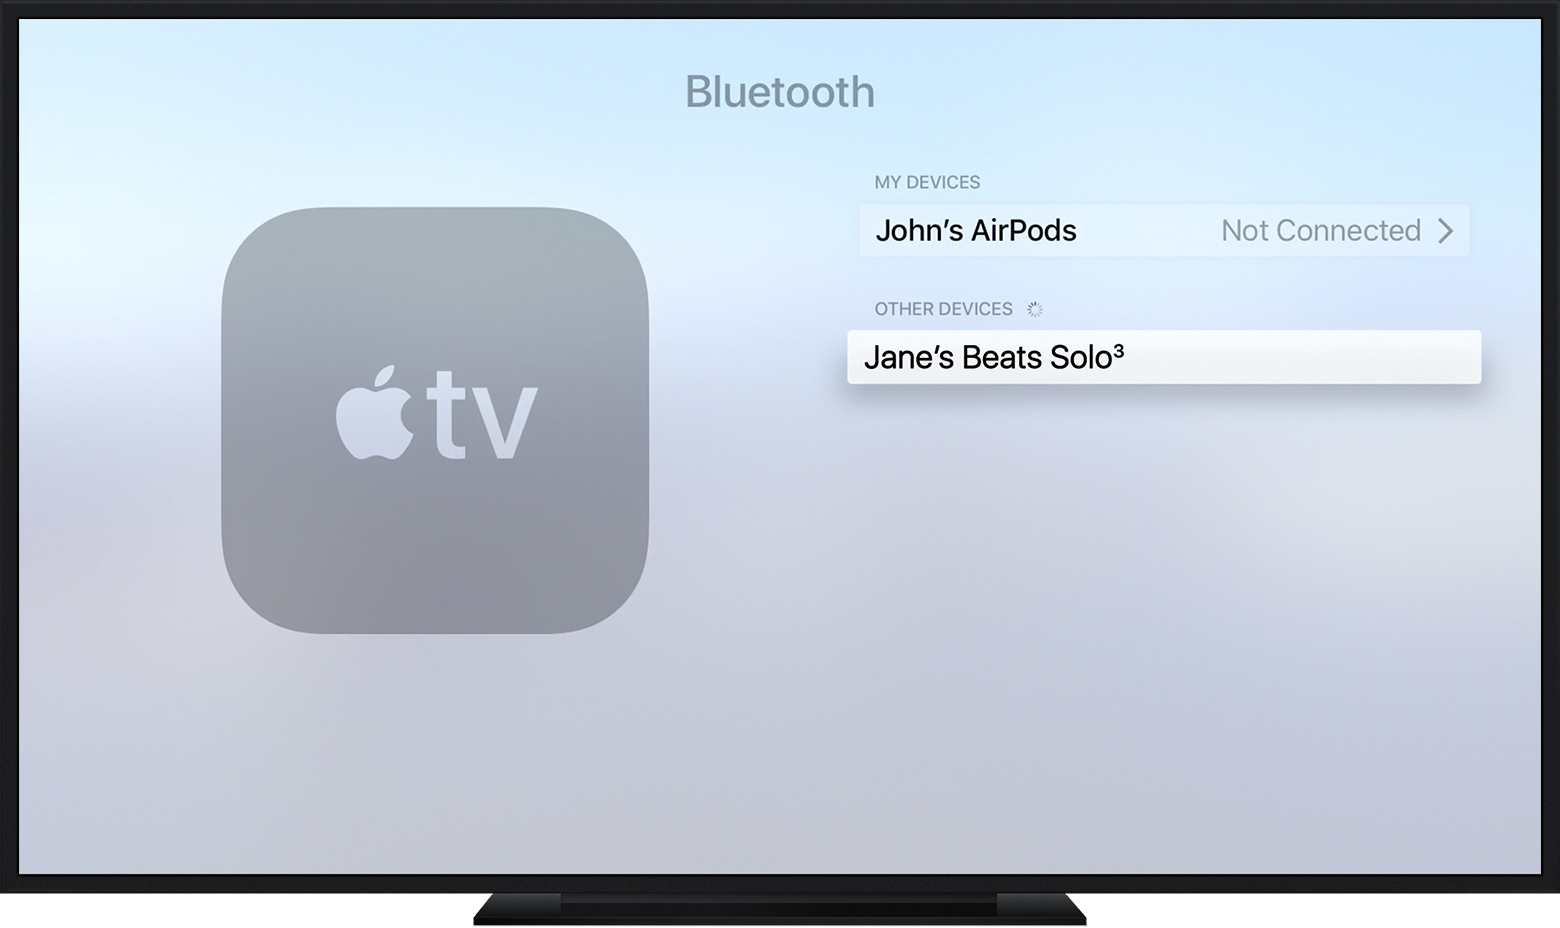 Apple TV Bluetooth menu highlighting an available Bluetooth device.